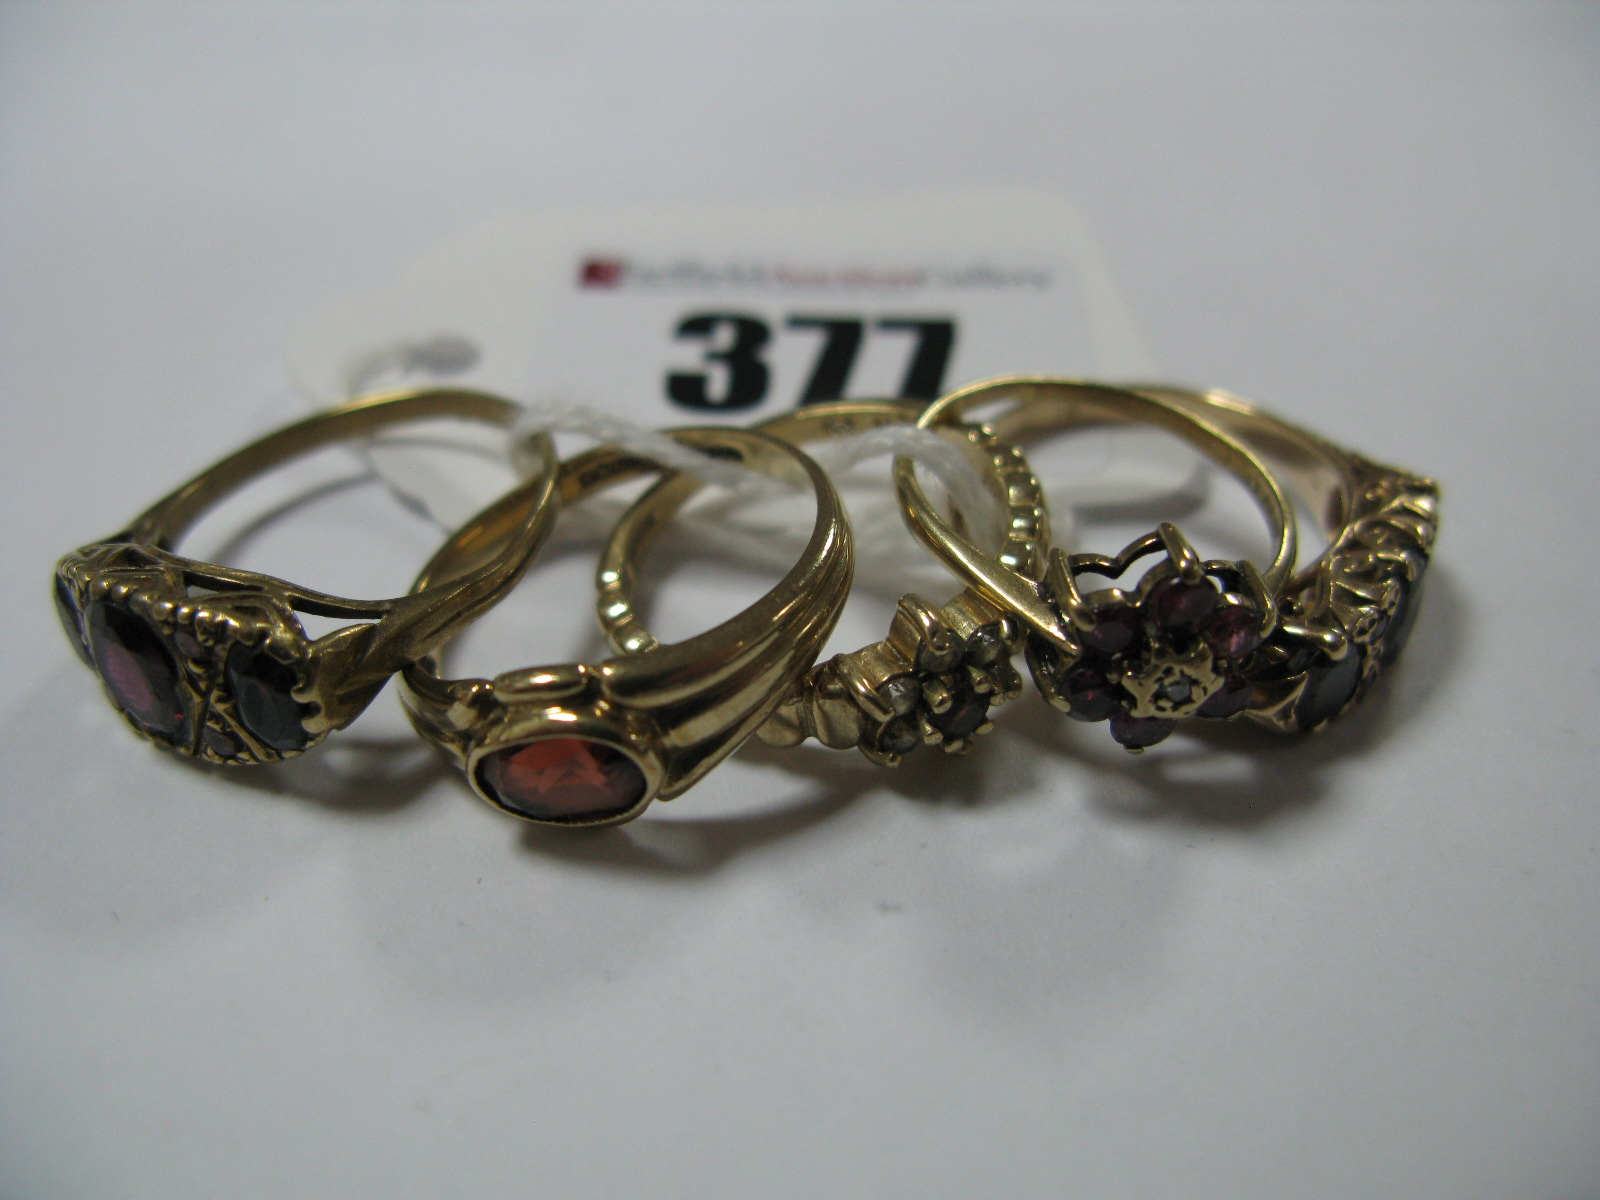 Lot 377 - A 9ct Gold Victorian Style Dress Ring, oval graduated set, between openwork setting and textured